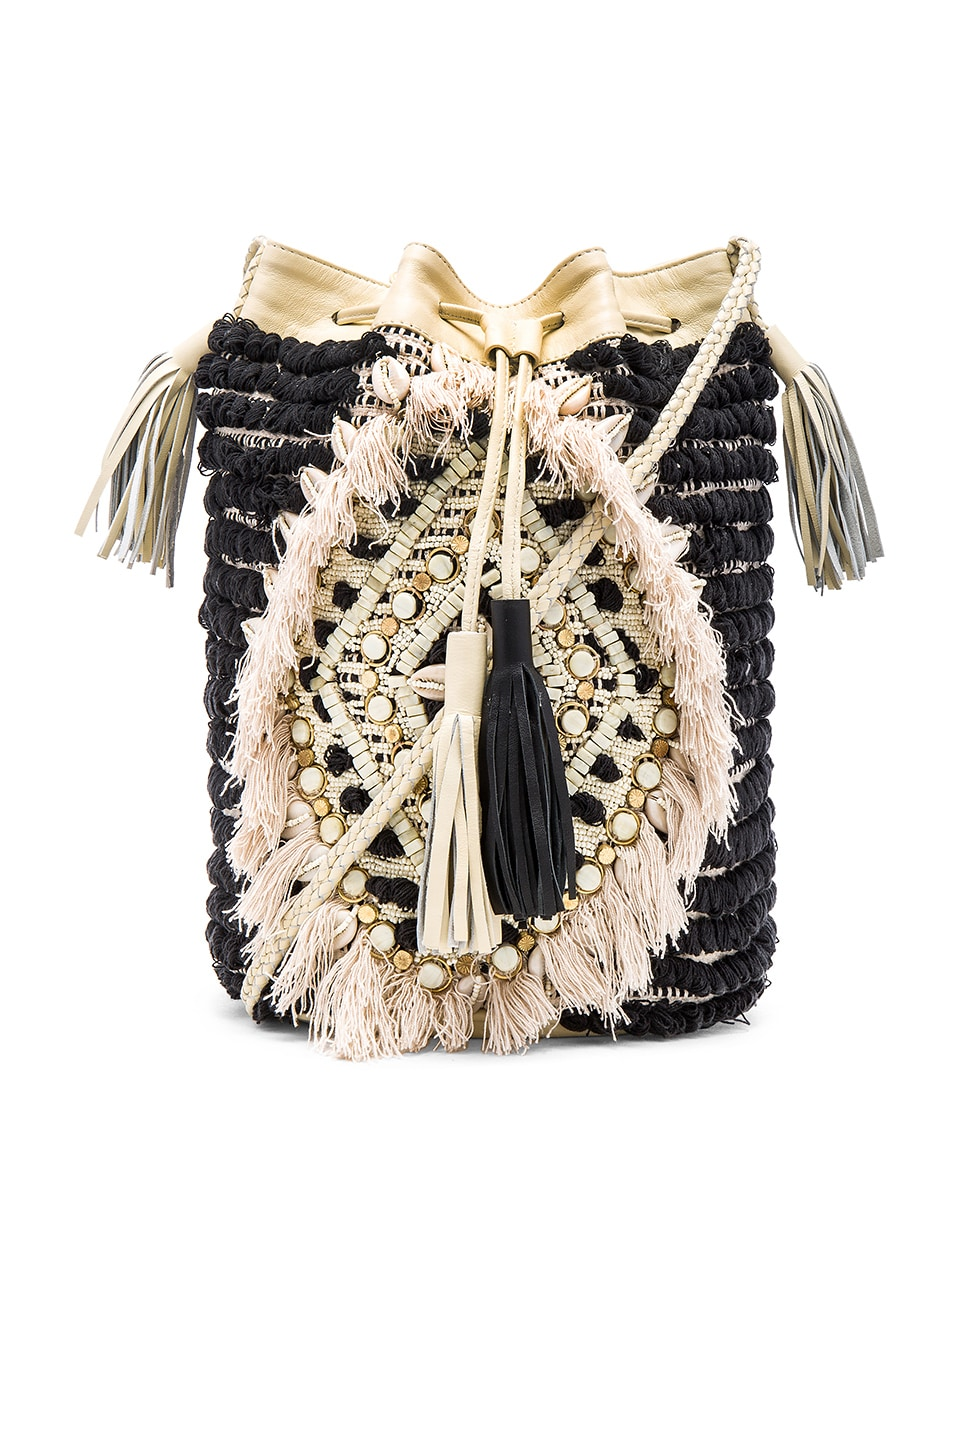 Antik Batik Jesa Bucket Bag in Black